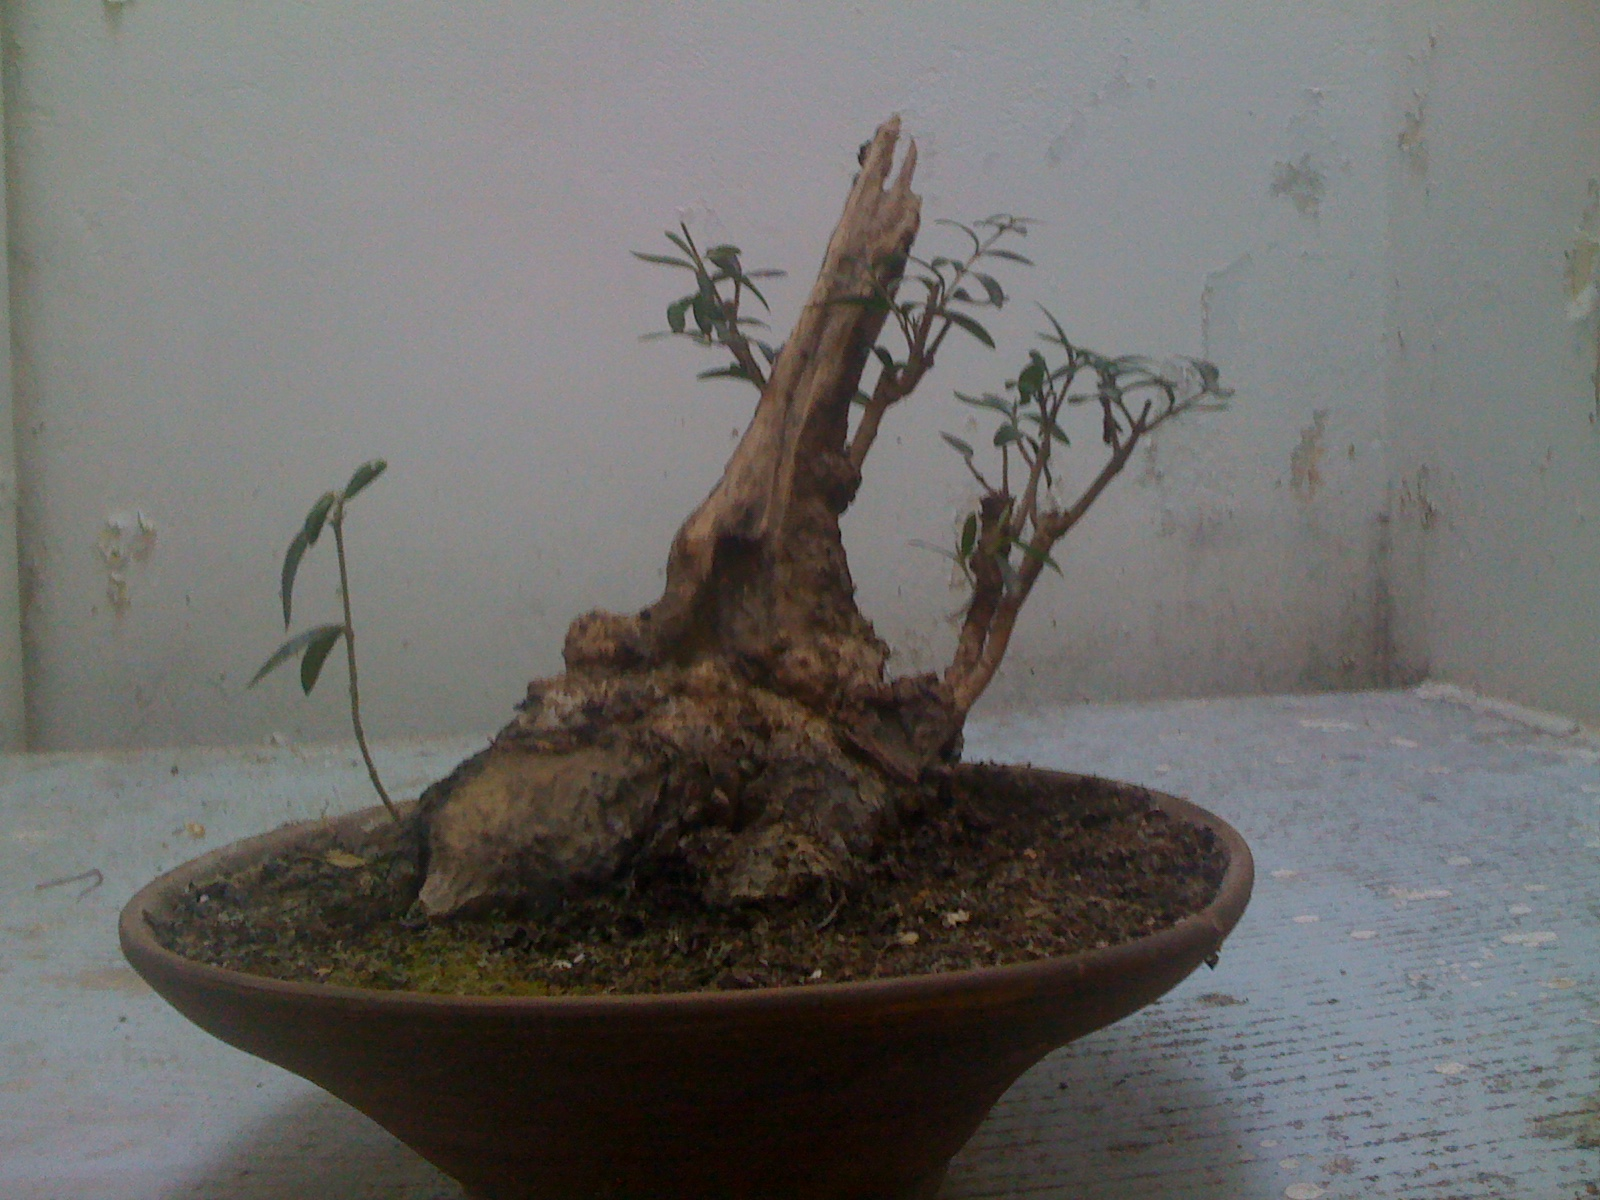 1000 Images About Bonsai On Pinterest Bonsai Trees Image